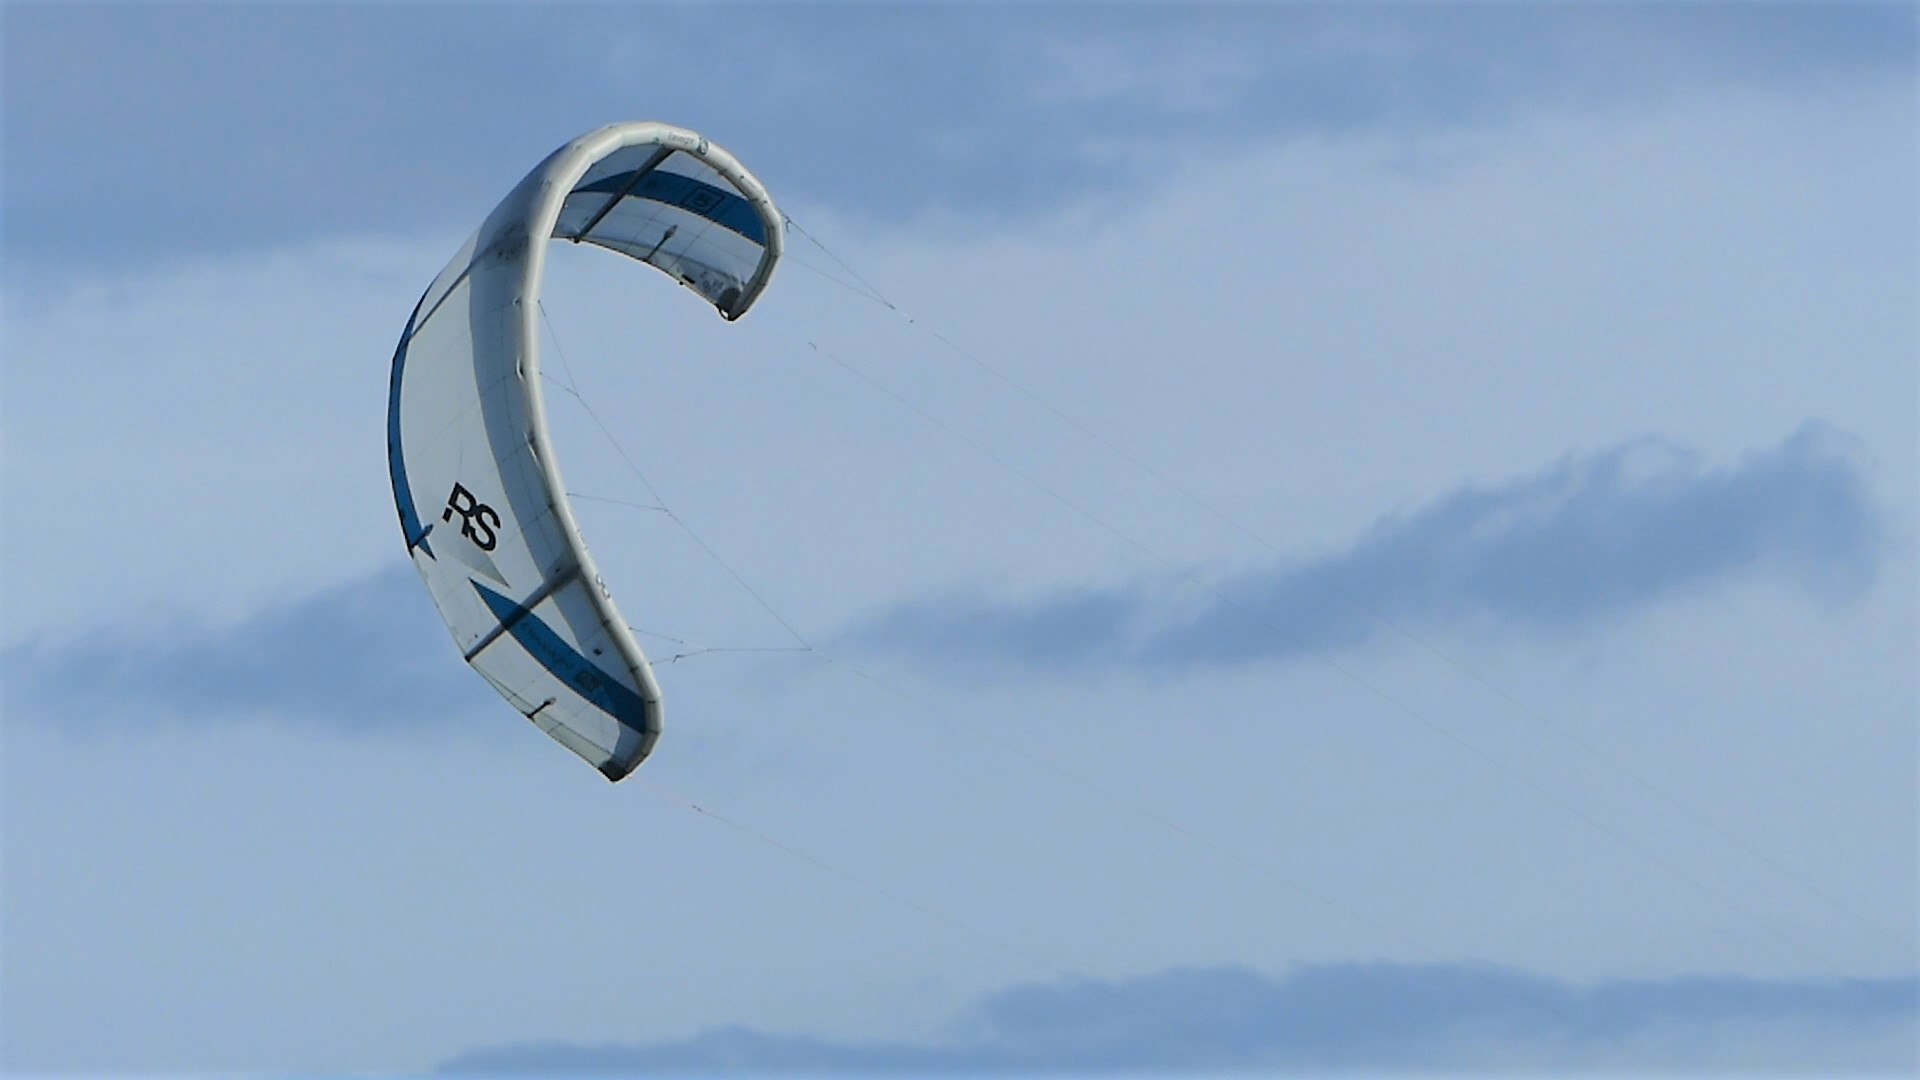 RS Eleveight kites 2021